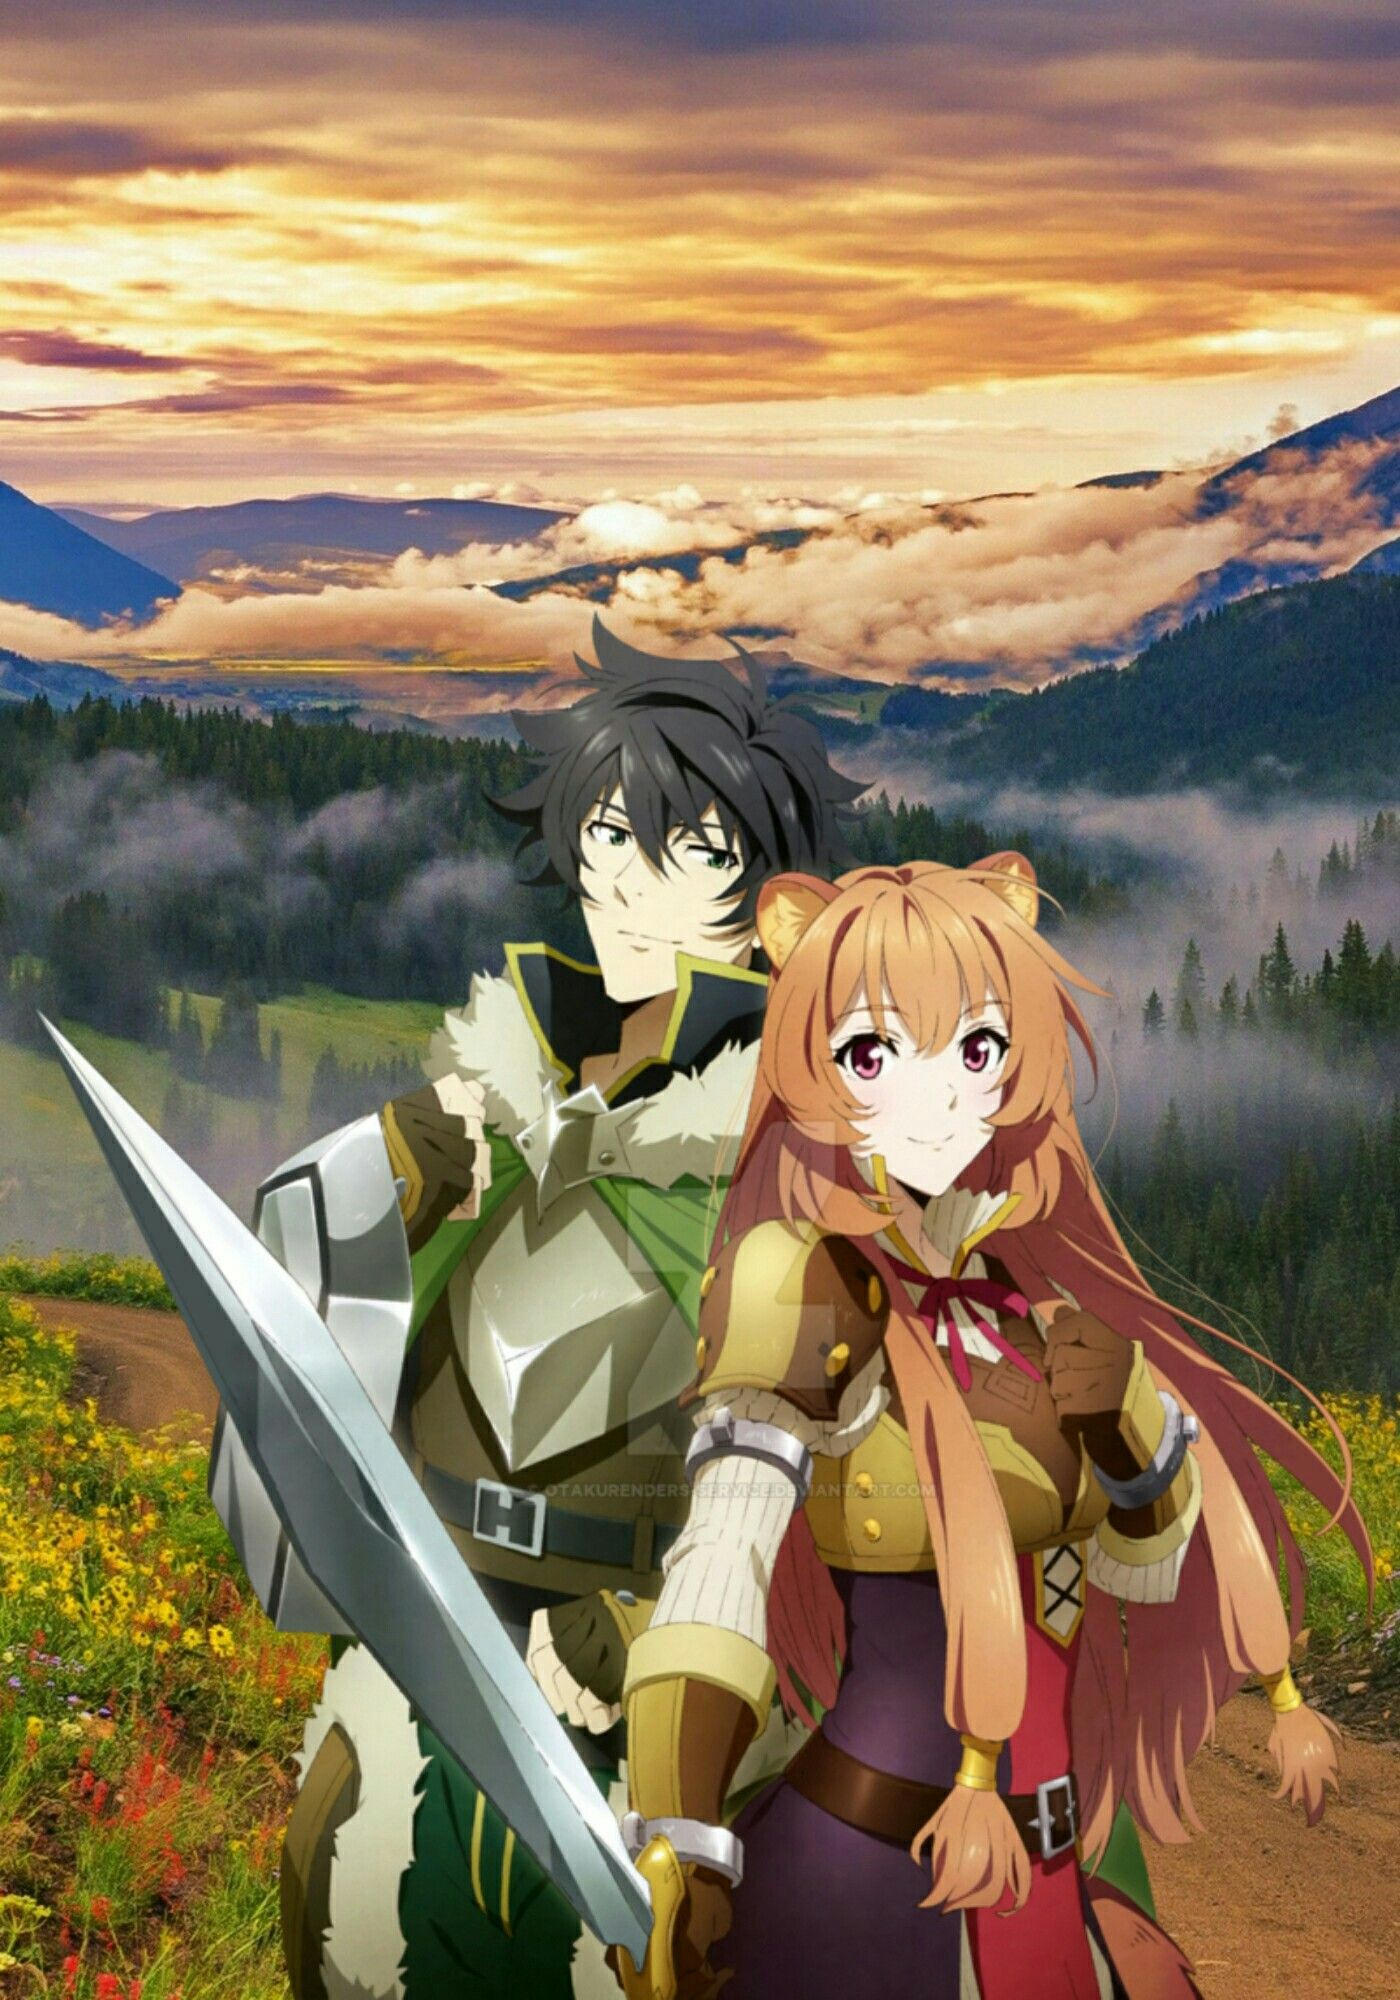 Naofumi E Raphtalia Anime Tate No Yuusha Personagens De Anime